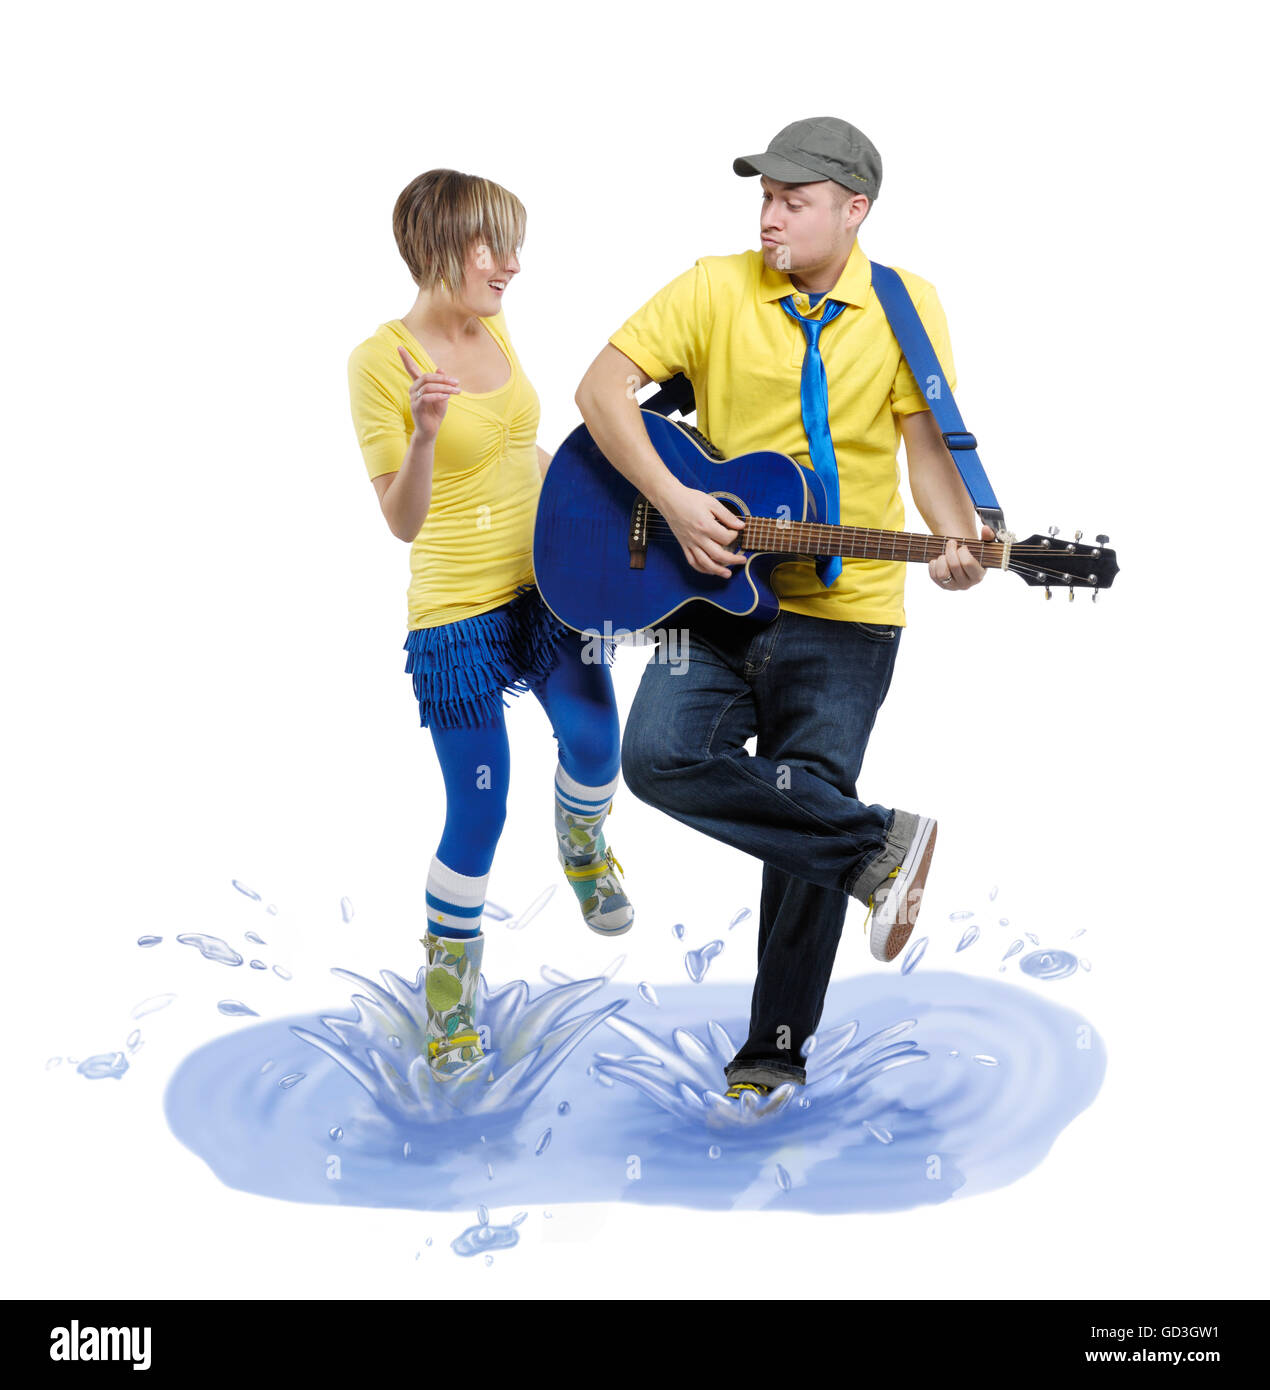 Man with a guitar and woman dancing in a puddle with splashes of water around them - Stock Image